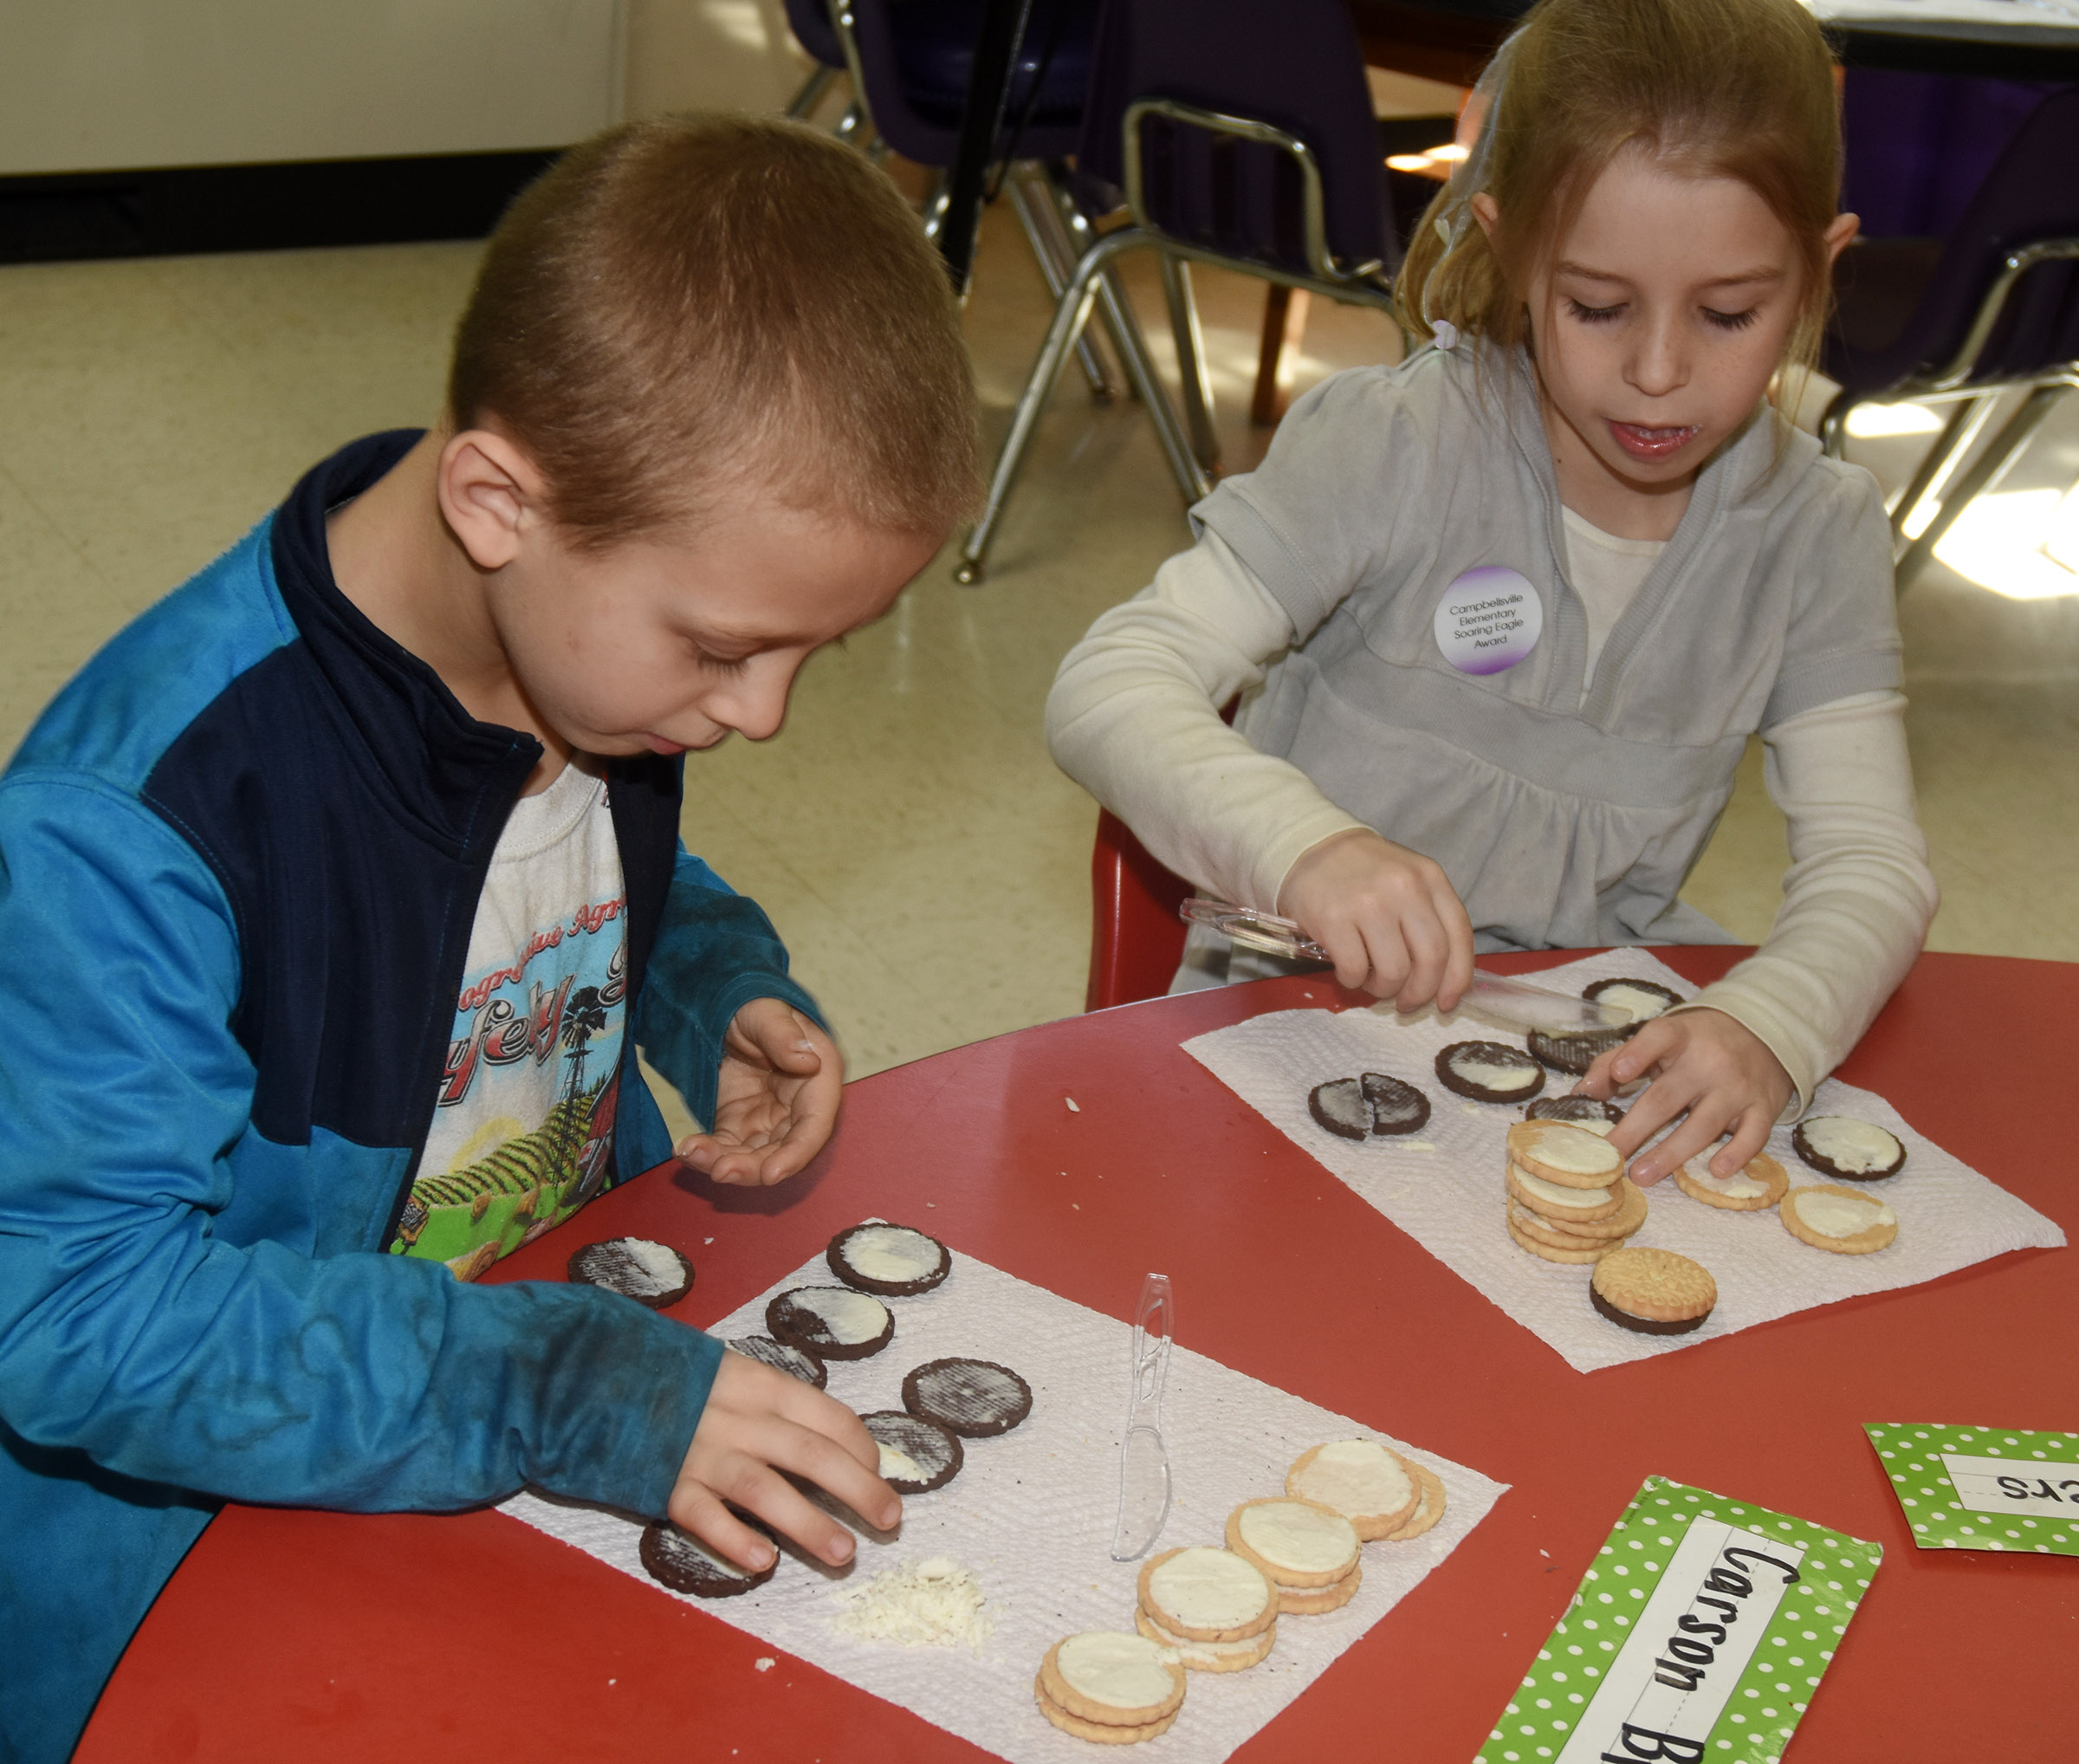 CES first-graders Carson Brown, at left, and Madison Walters make the phases of the moon by using cream filled cookies.